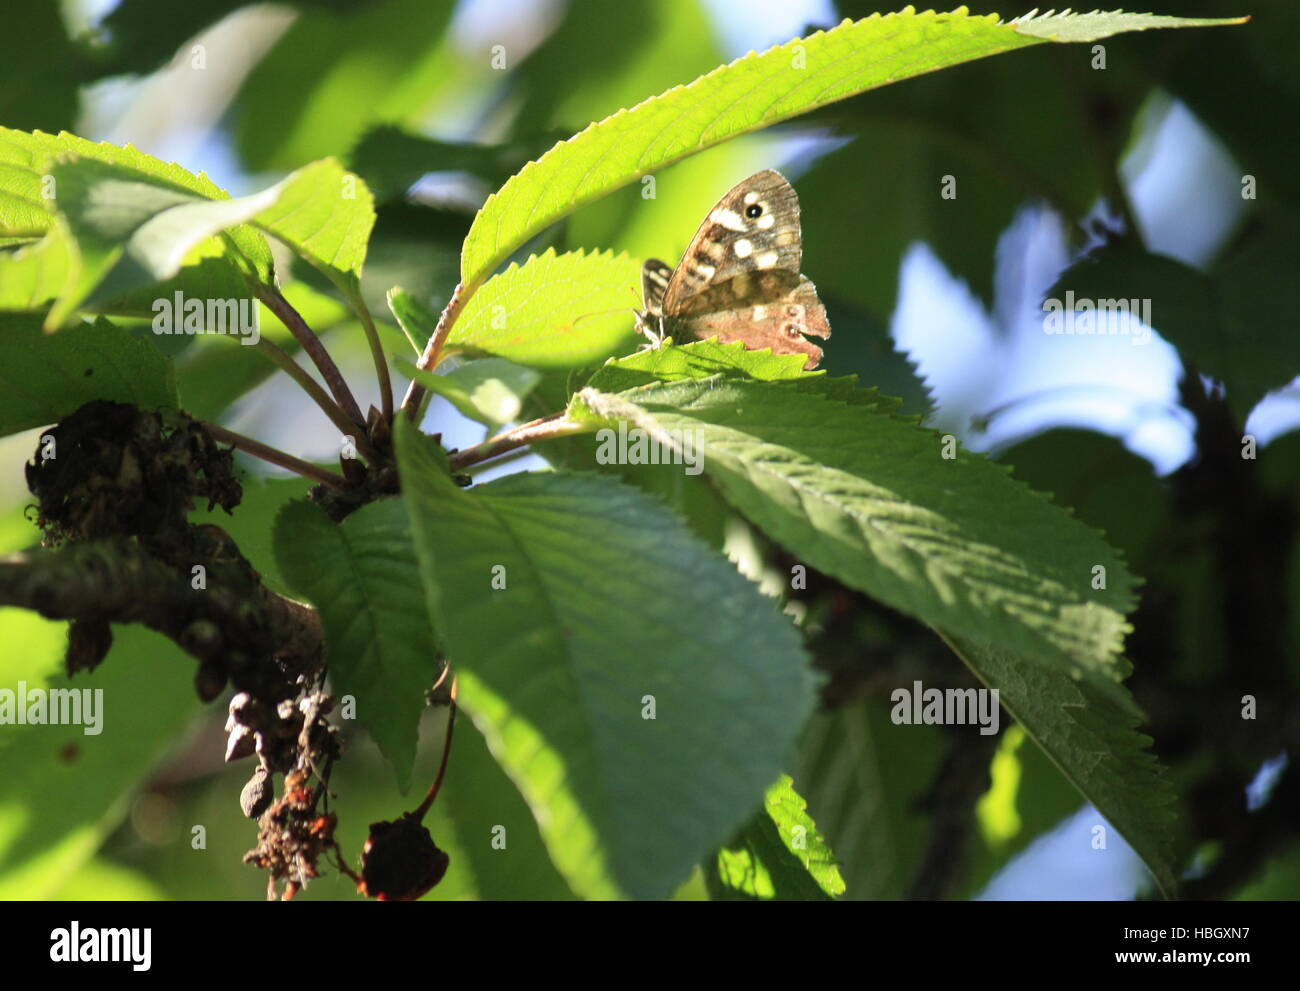 Leaves Butterfly in green foliage - Stock Image